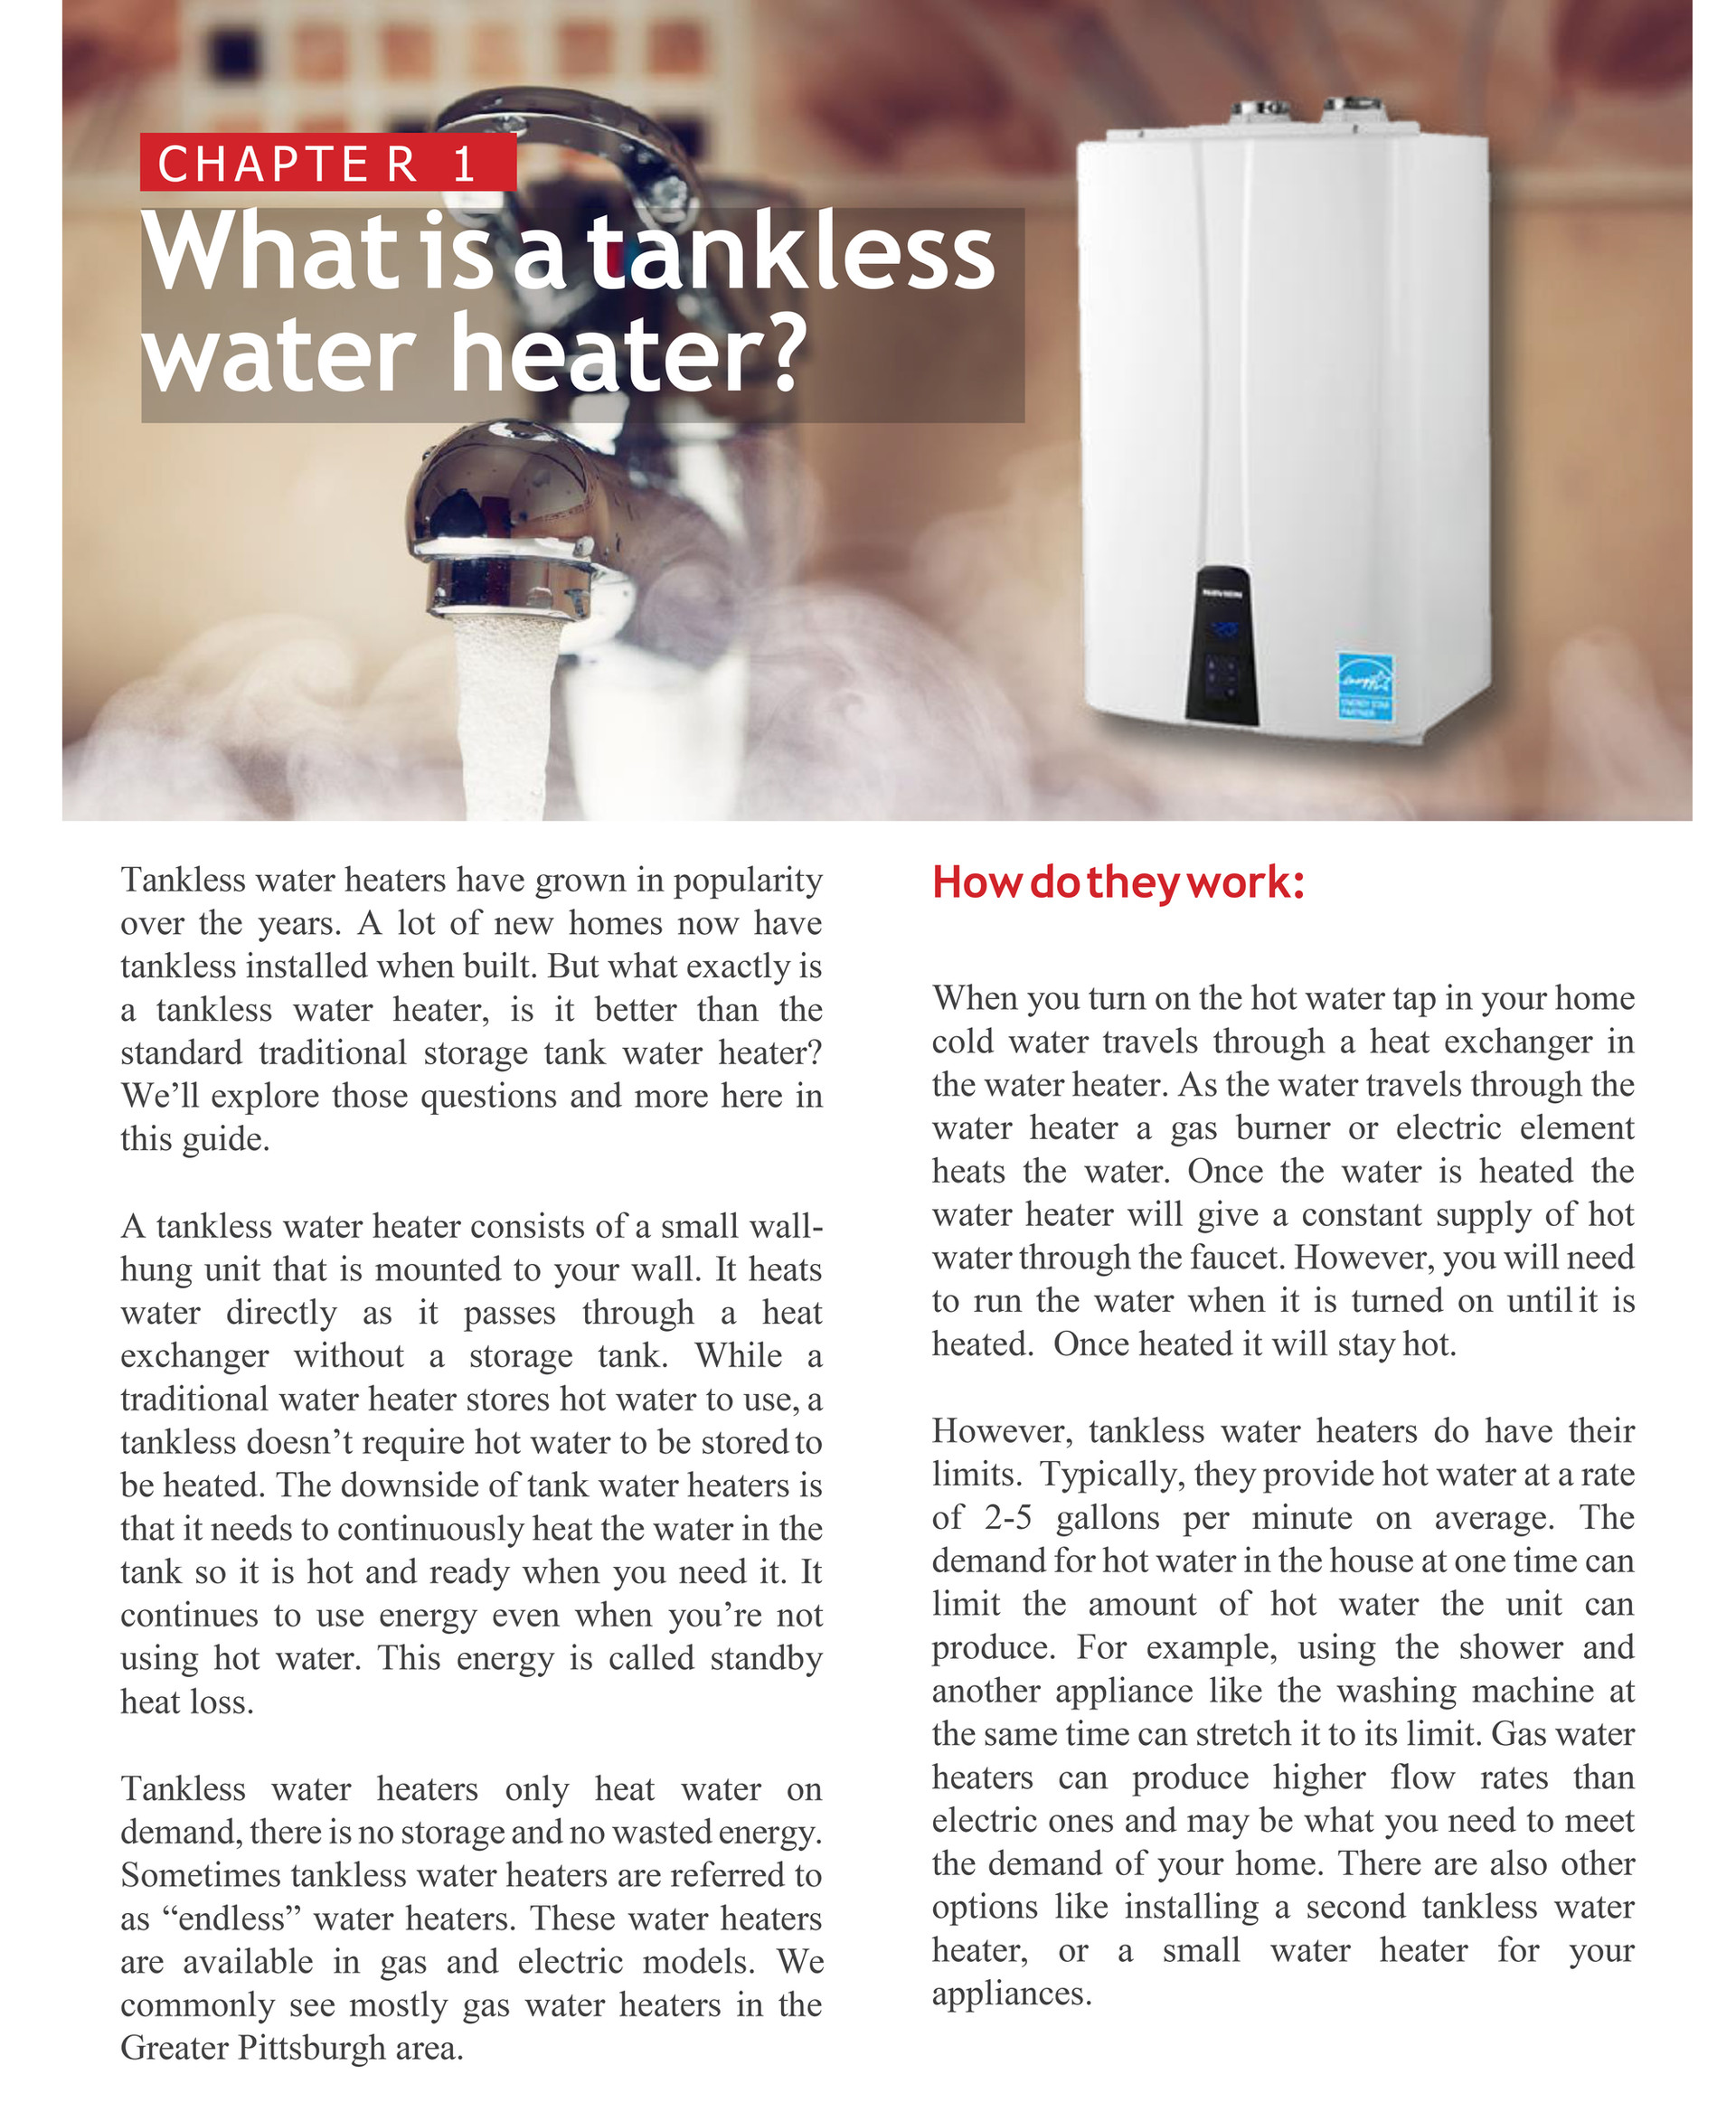 WHAT IS TANKLESS